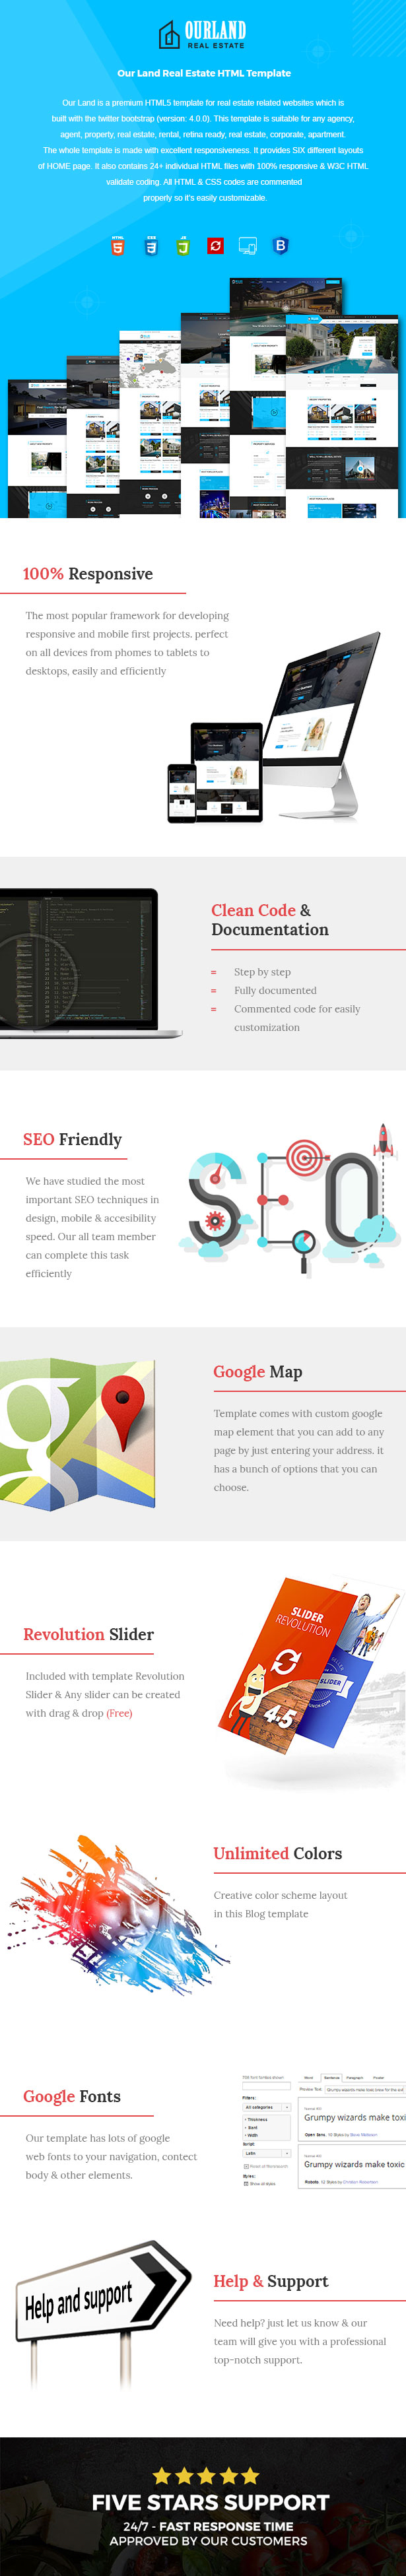 Ourland - Real Estates HTML Template - 3